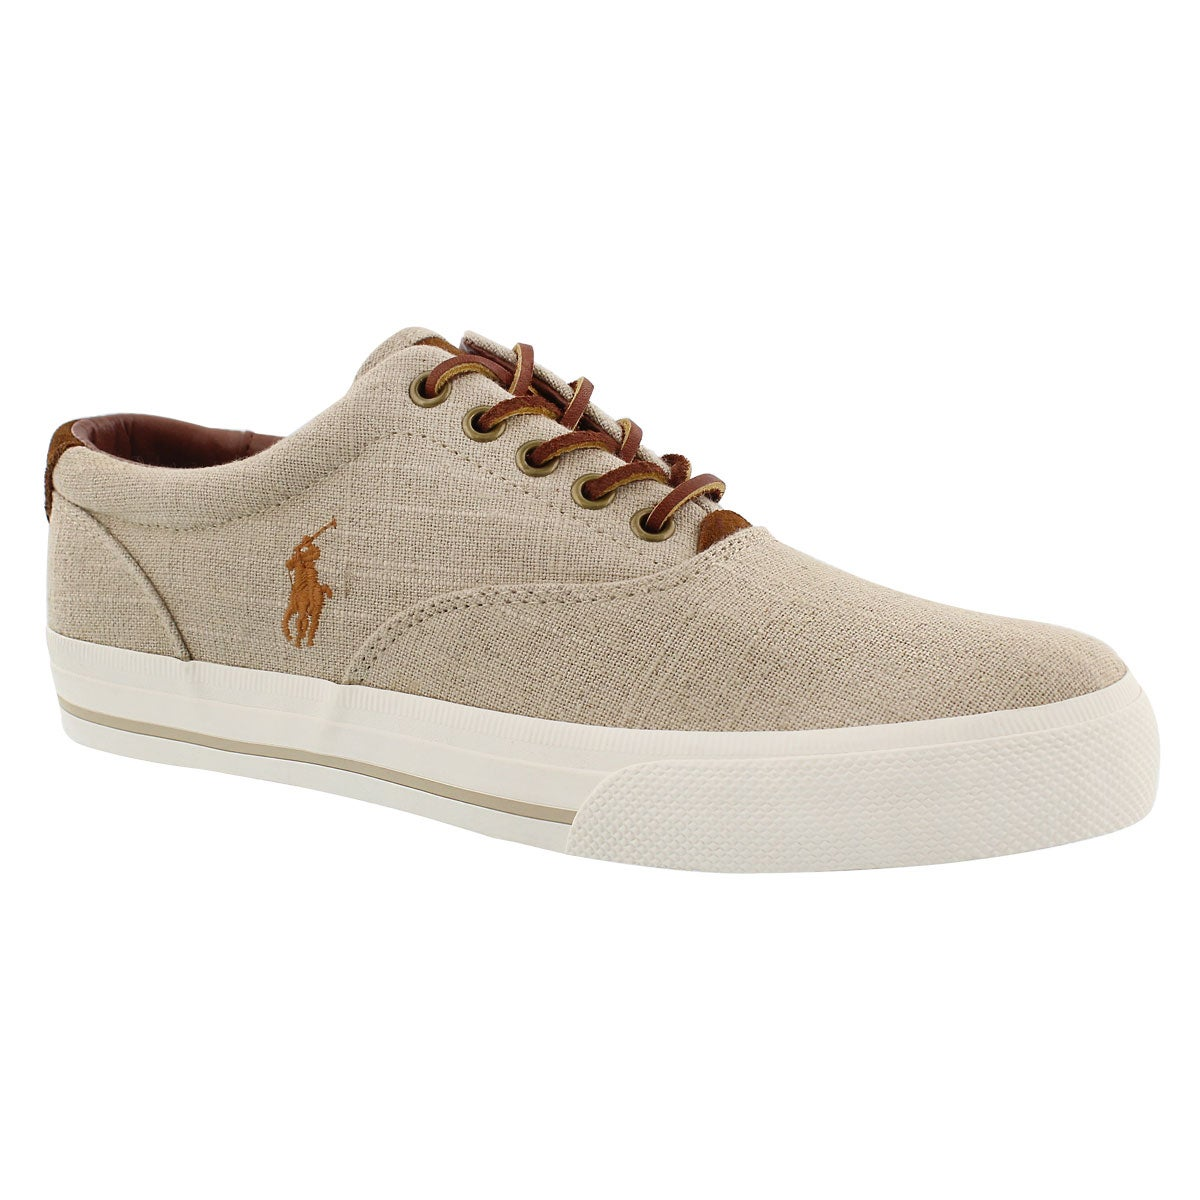 Mns Vaughn natural linen fashion sneaker